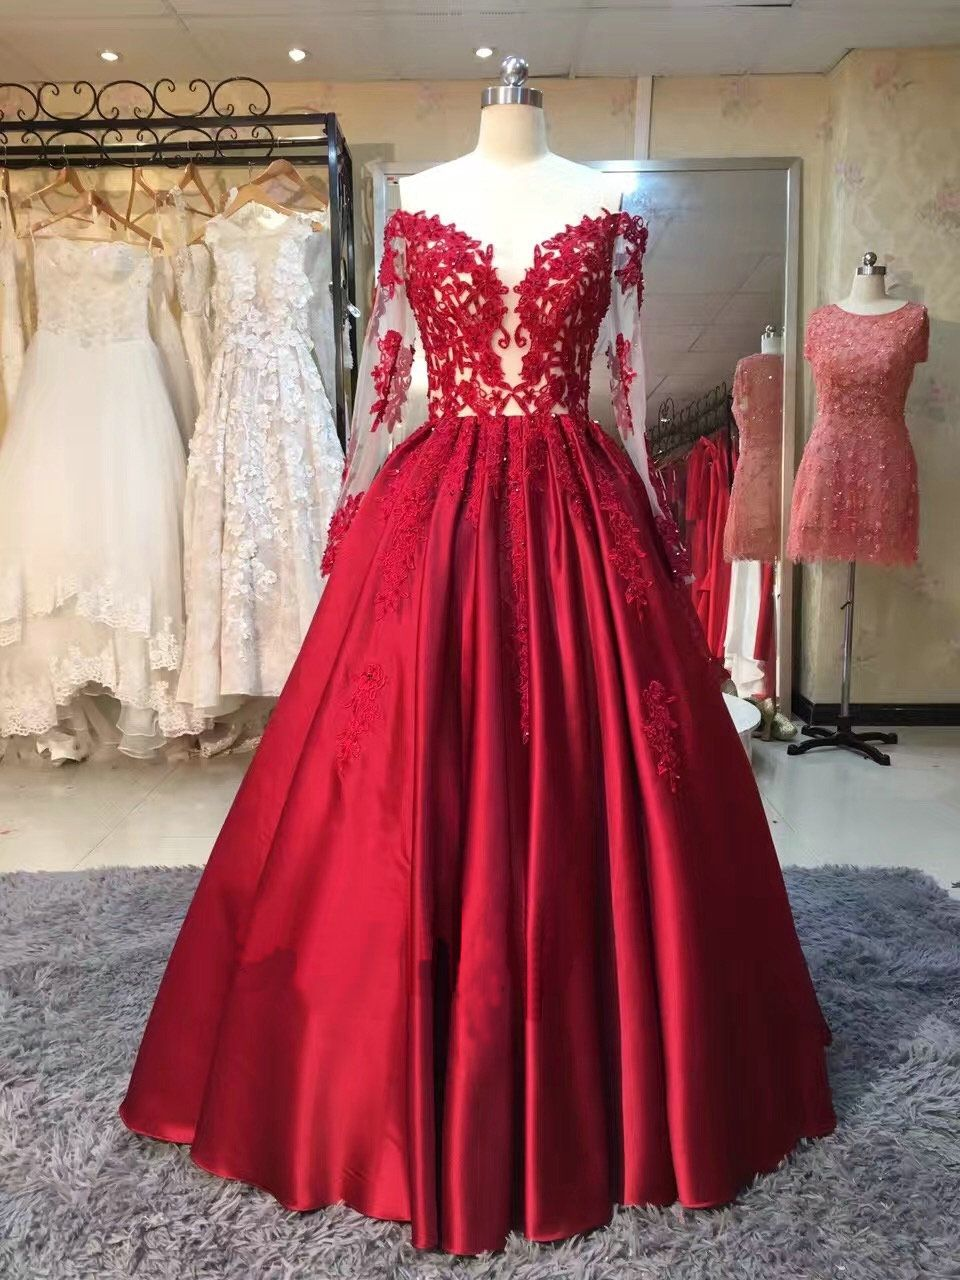 Burgundy Evening Dress 2017 Evening Dresses Vintage Prom Dress Ball Gown Lace Appliqued Evening Gown Real Made Satin Prom Dresses Long Sleeve Wedding Party Dres In 2021 Prom Dresses Ball Gown Prom Dresses Long With Sleeves [ 1280 x 960 Pixel ]